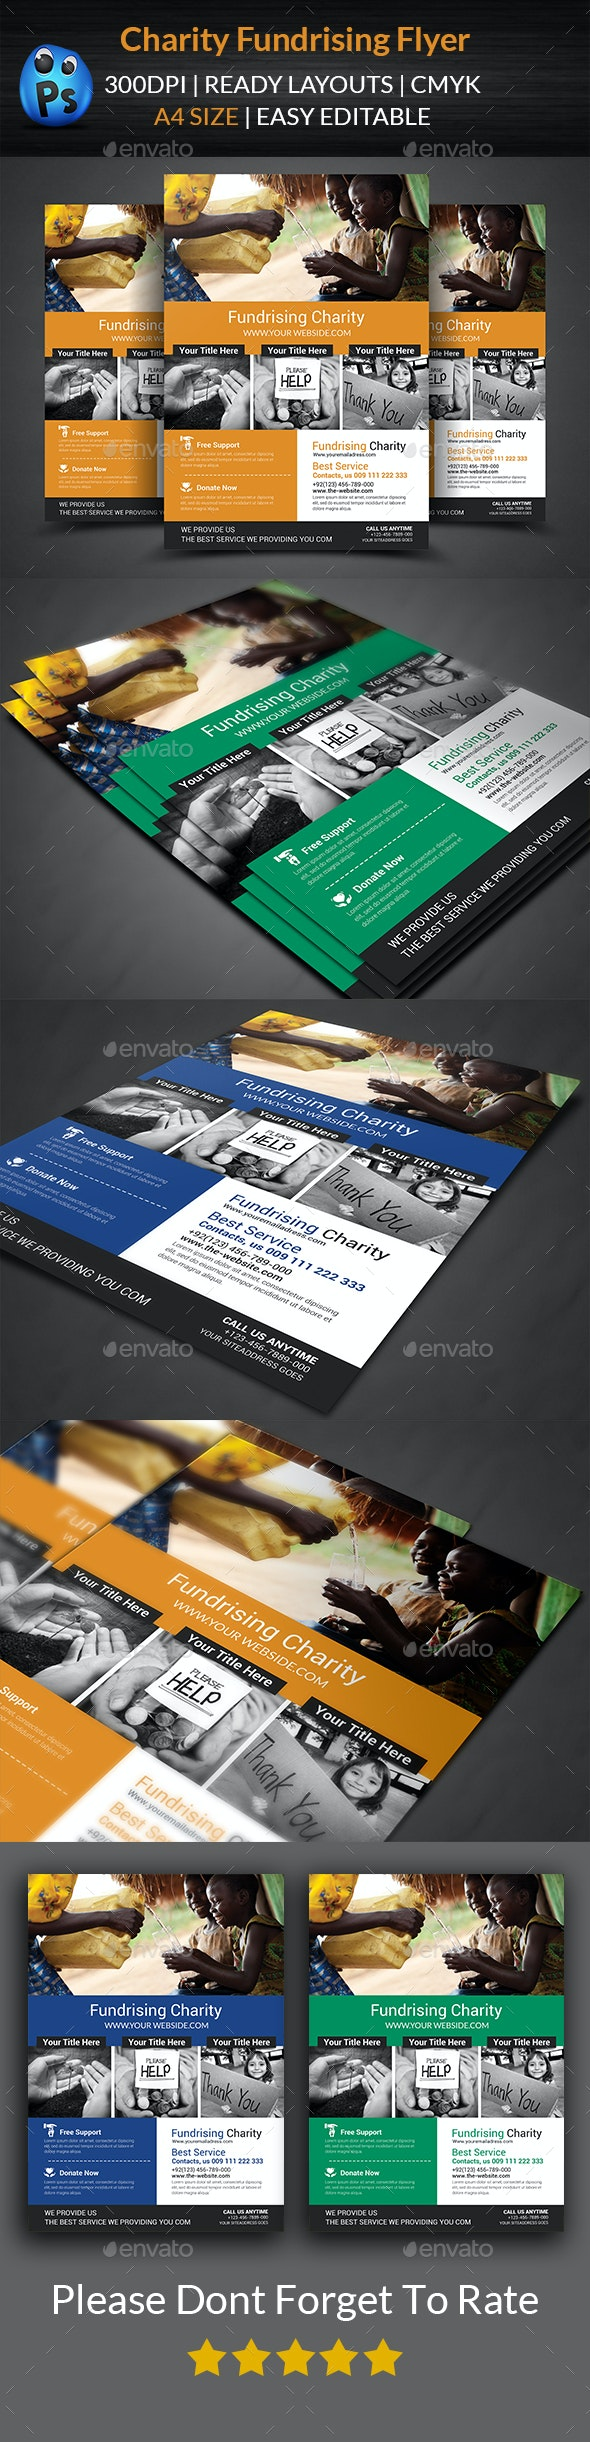 Charity Fundraisers Flyer Templates - Corporate Flyers